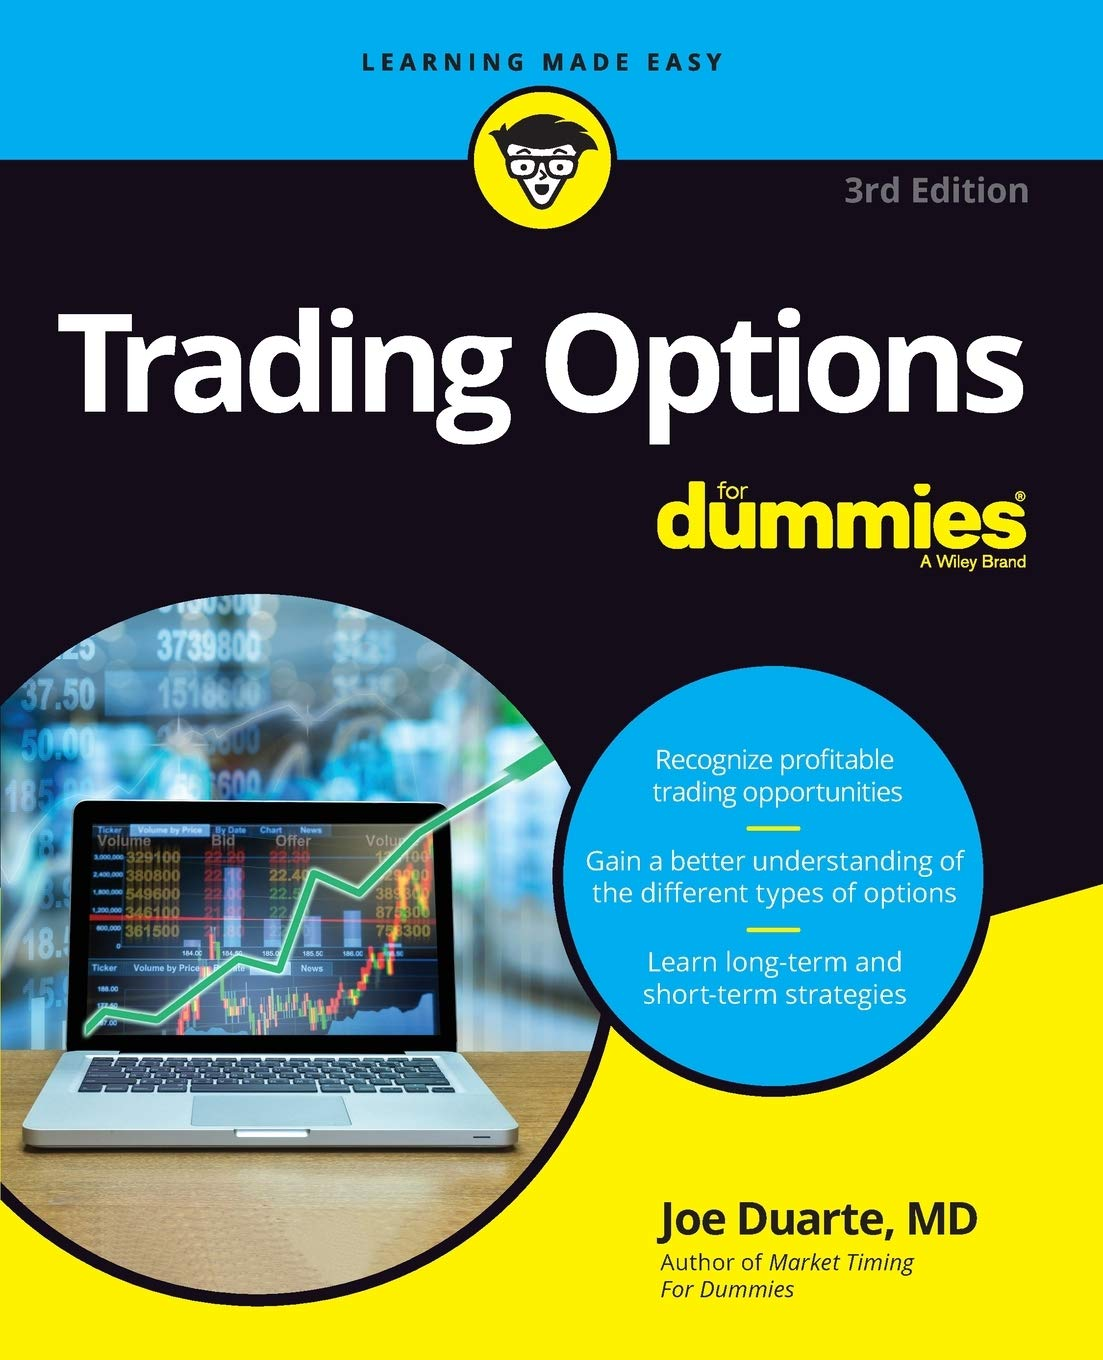 Binary options for dummies afl coleman medal 2021 betting sites